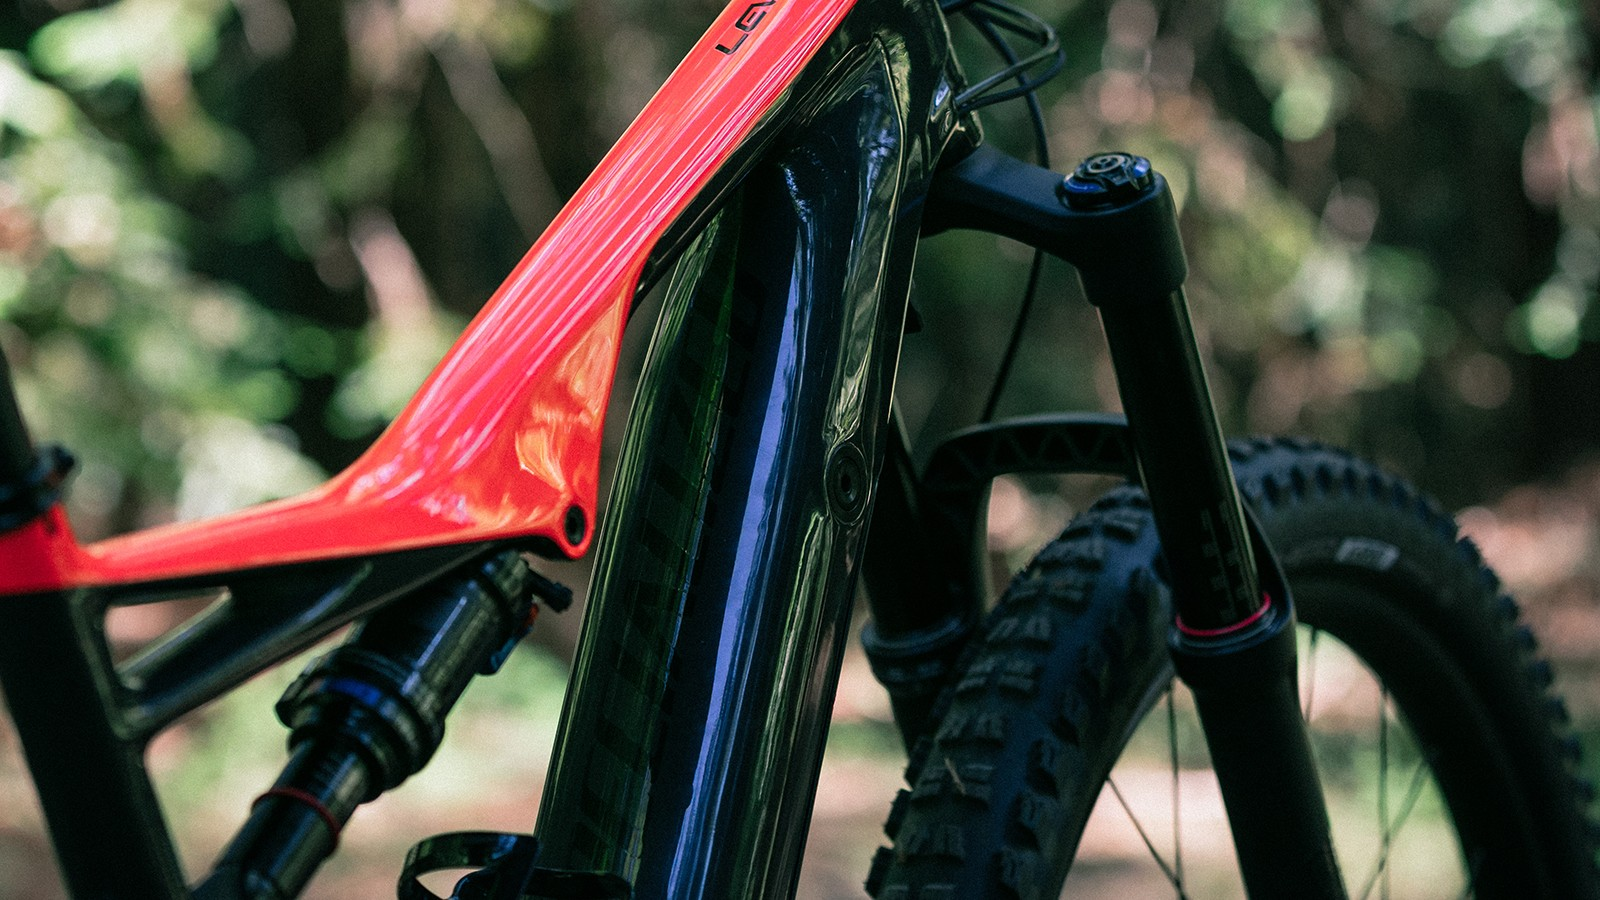 The integrated battery sits inside the down tube and access is no different to the older alloy model